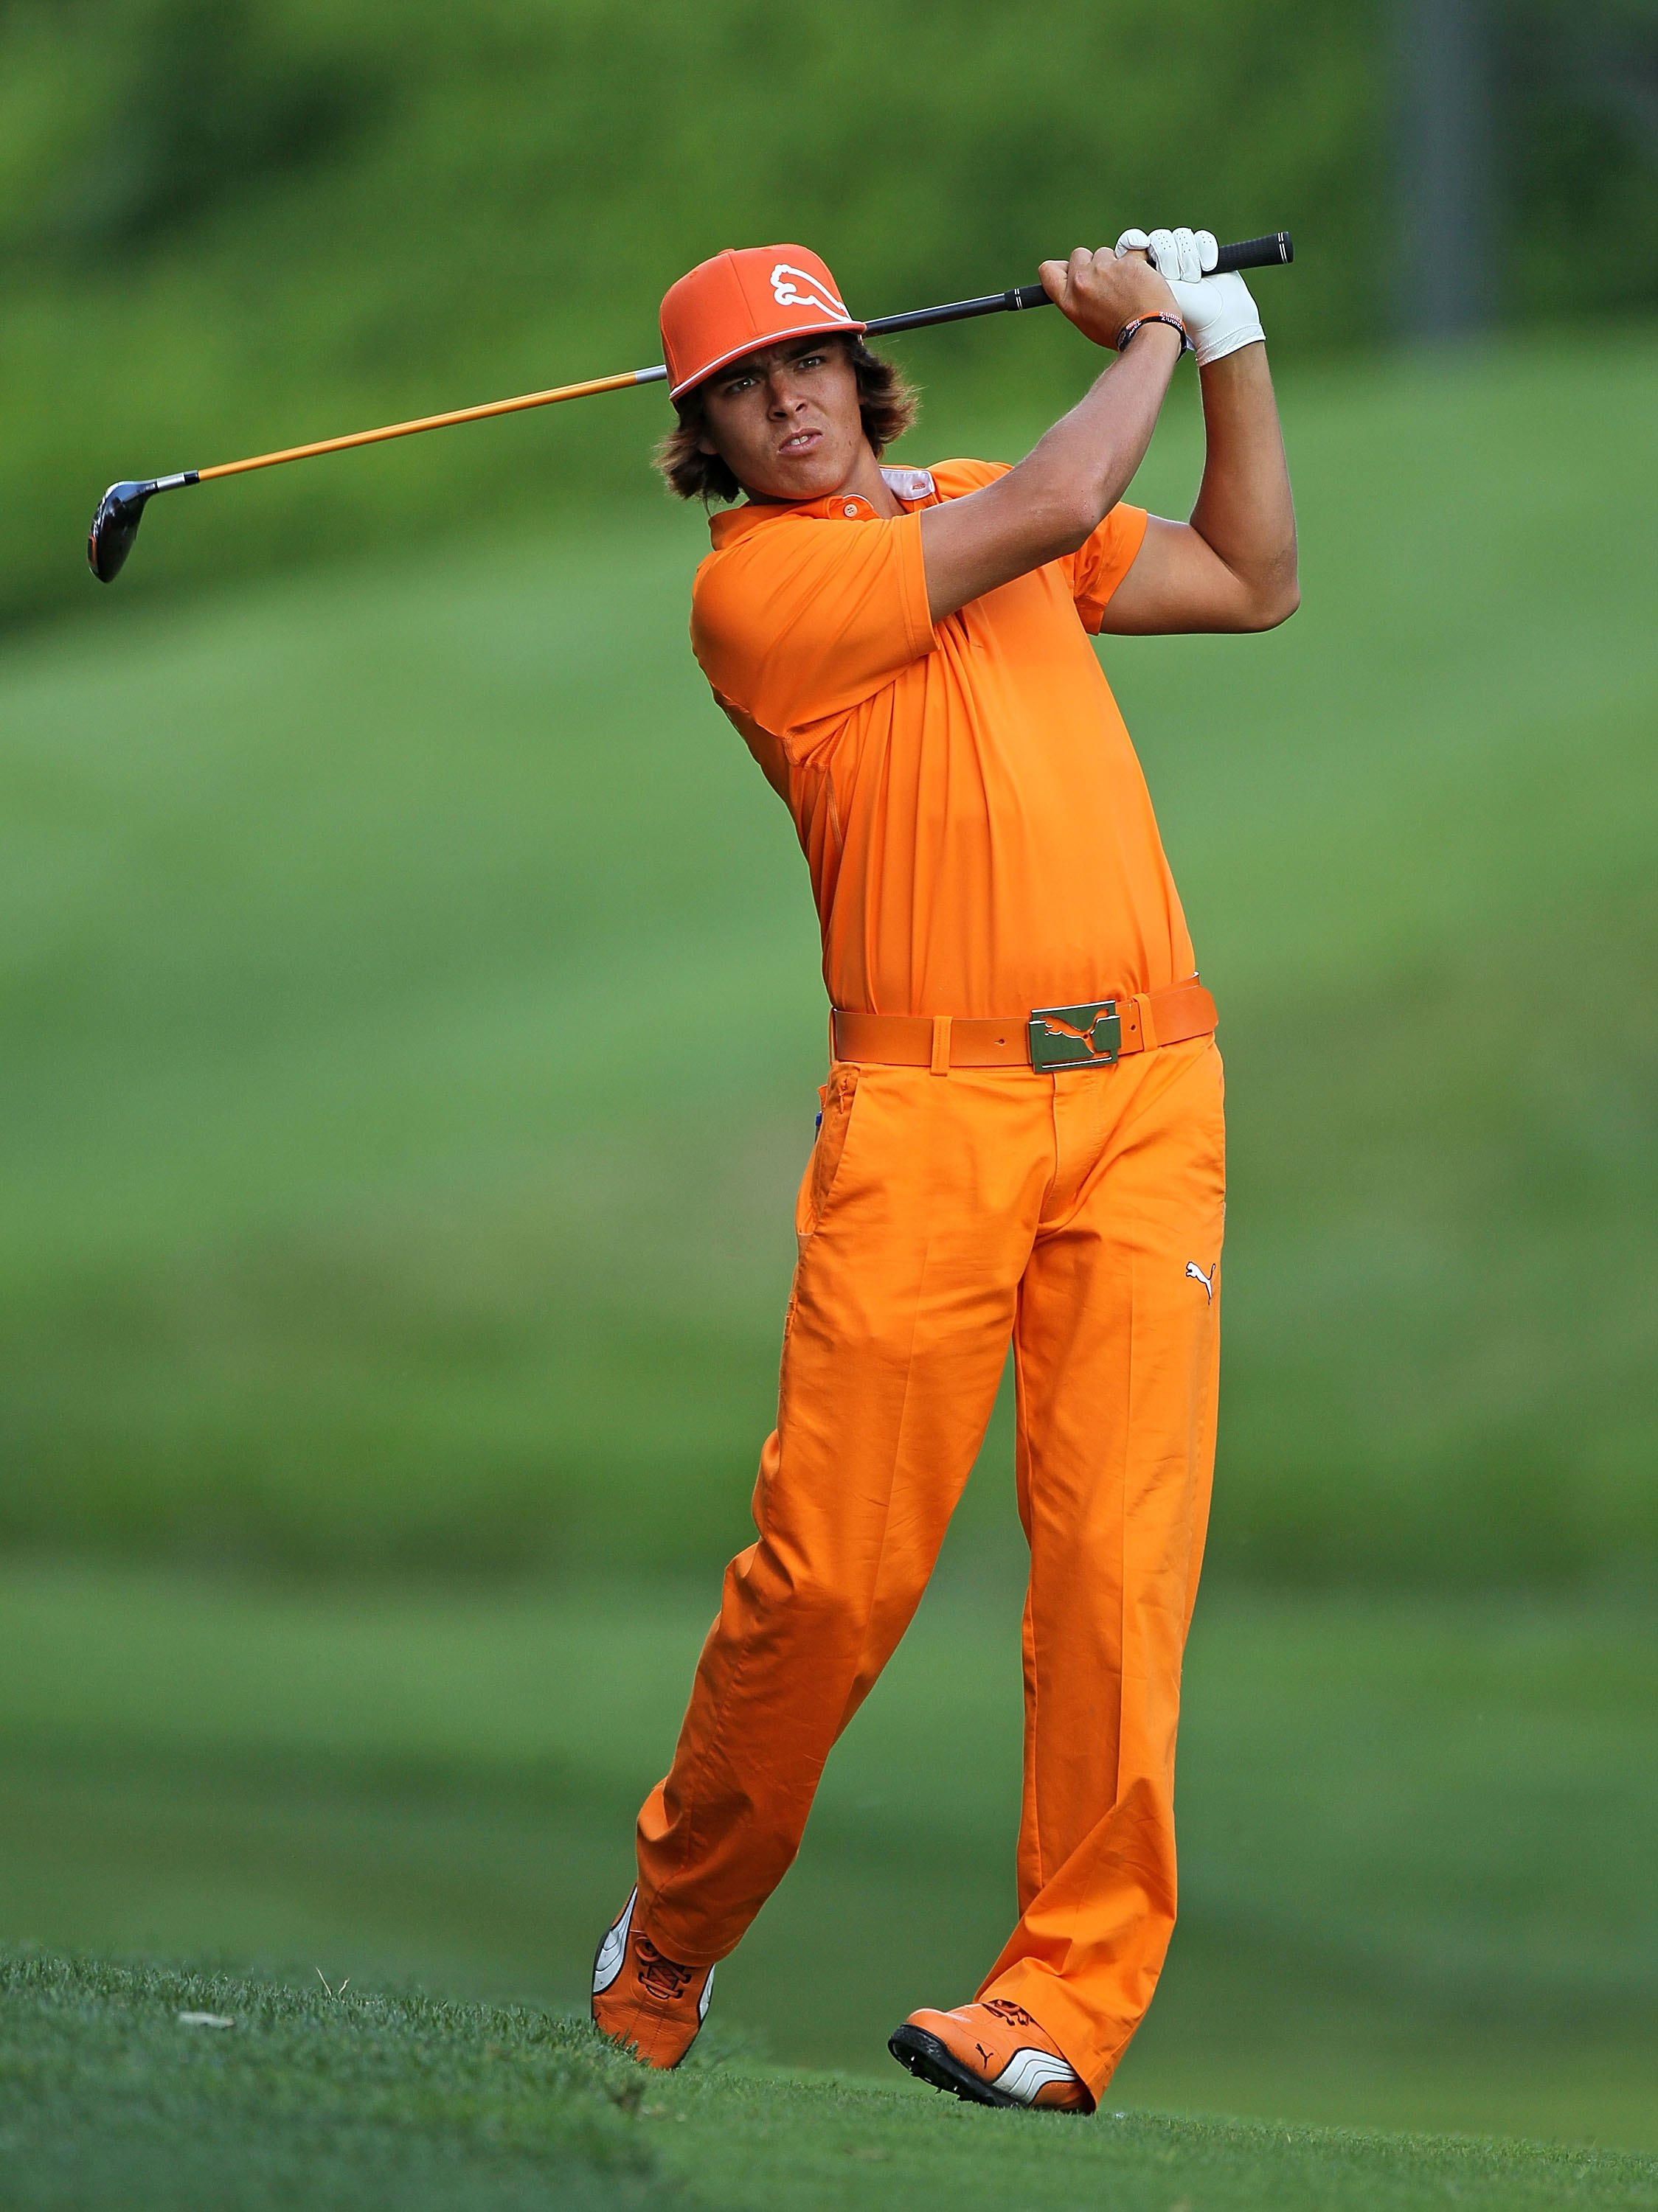 Rickie Fowler At 5 And Tied For 2nd Moto Related Motocross Forums Message Boards Vital Mx